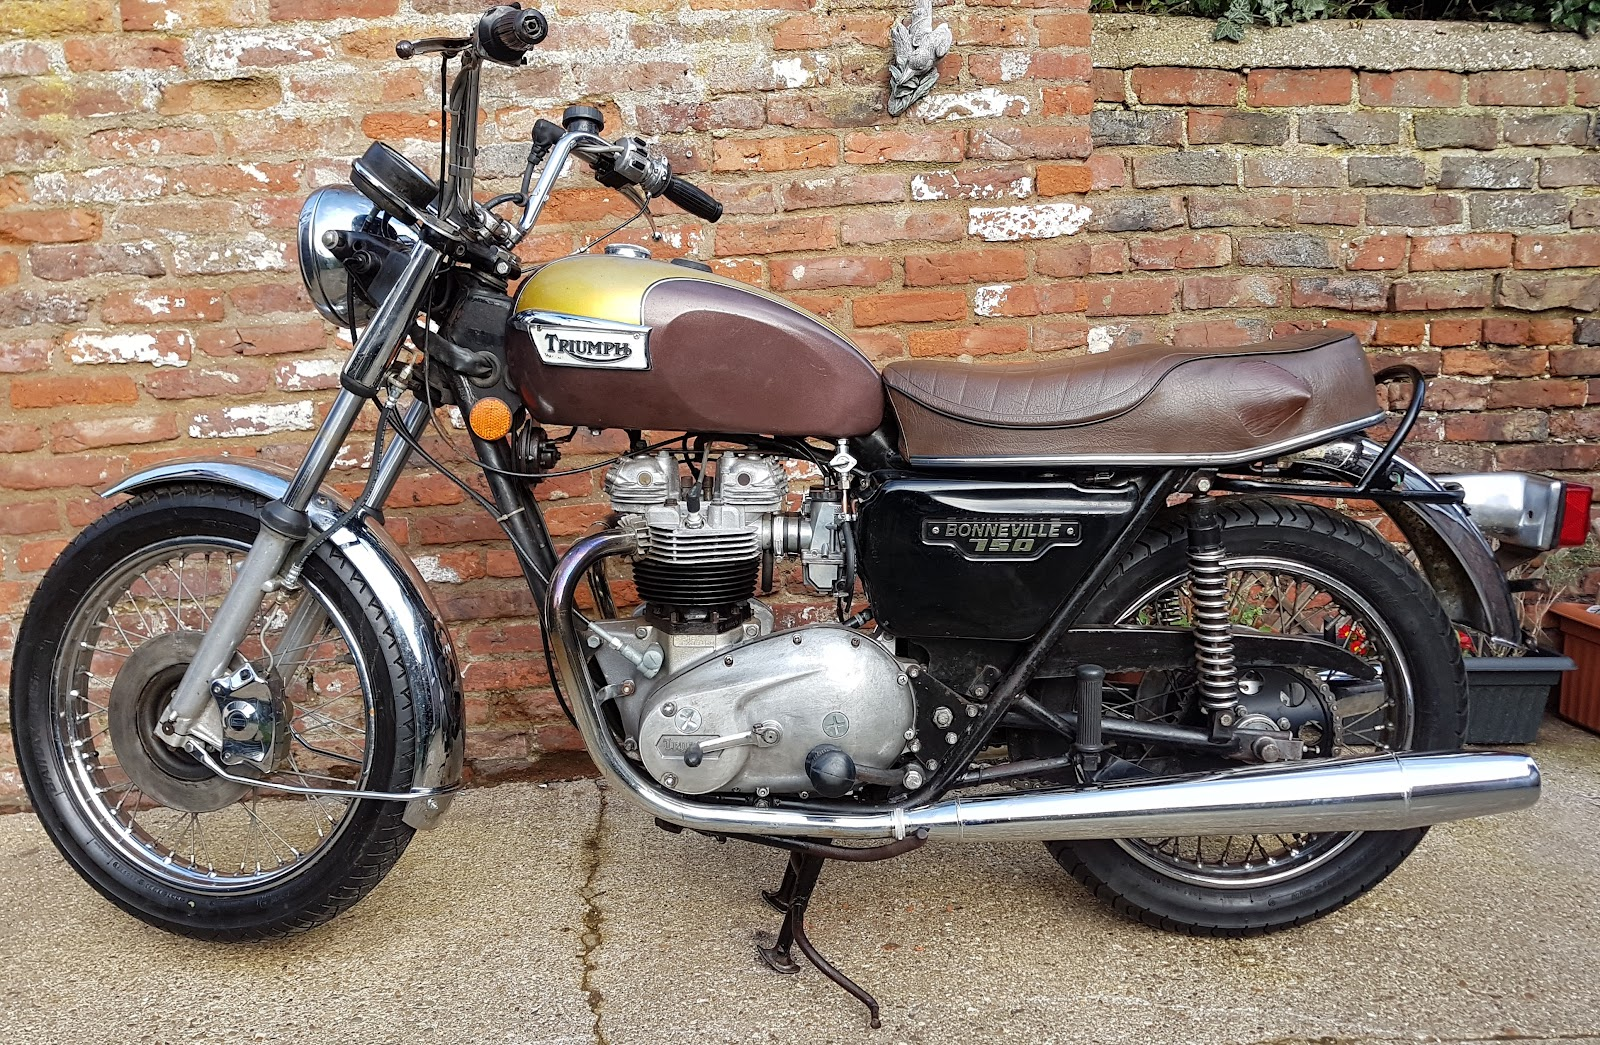 Triumph Bonneville T140E repaired and back on the road.